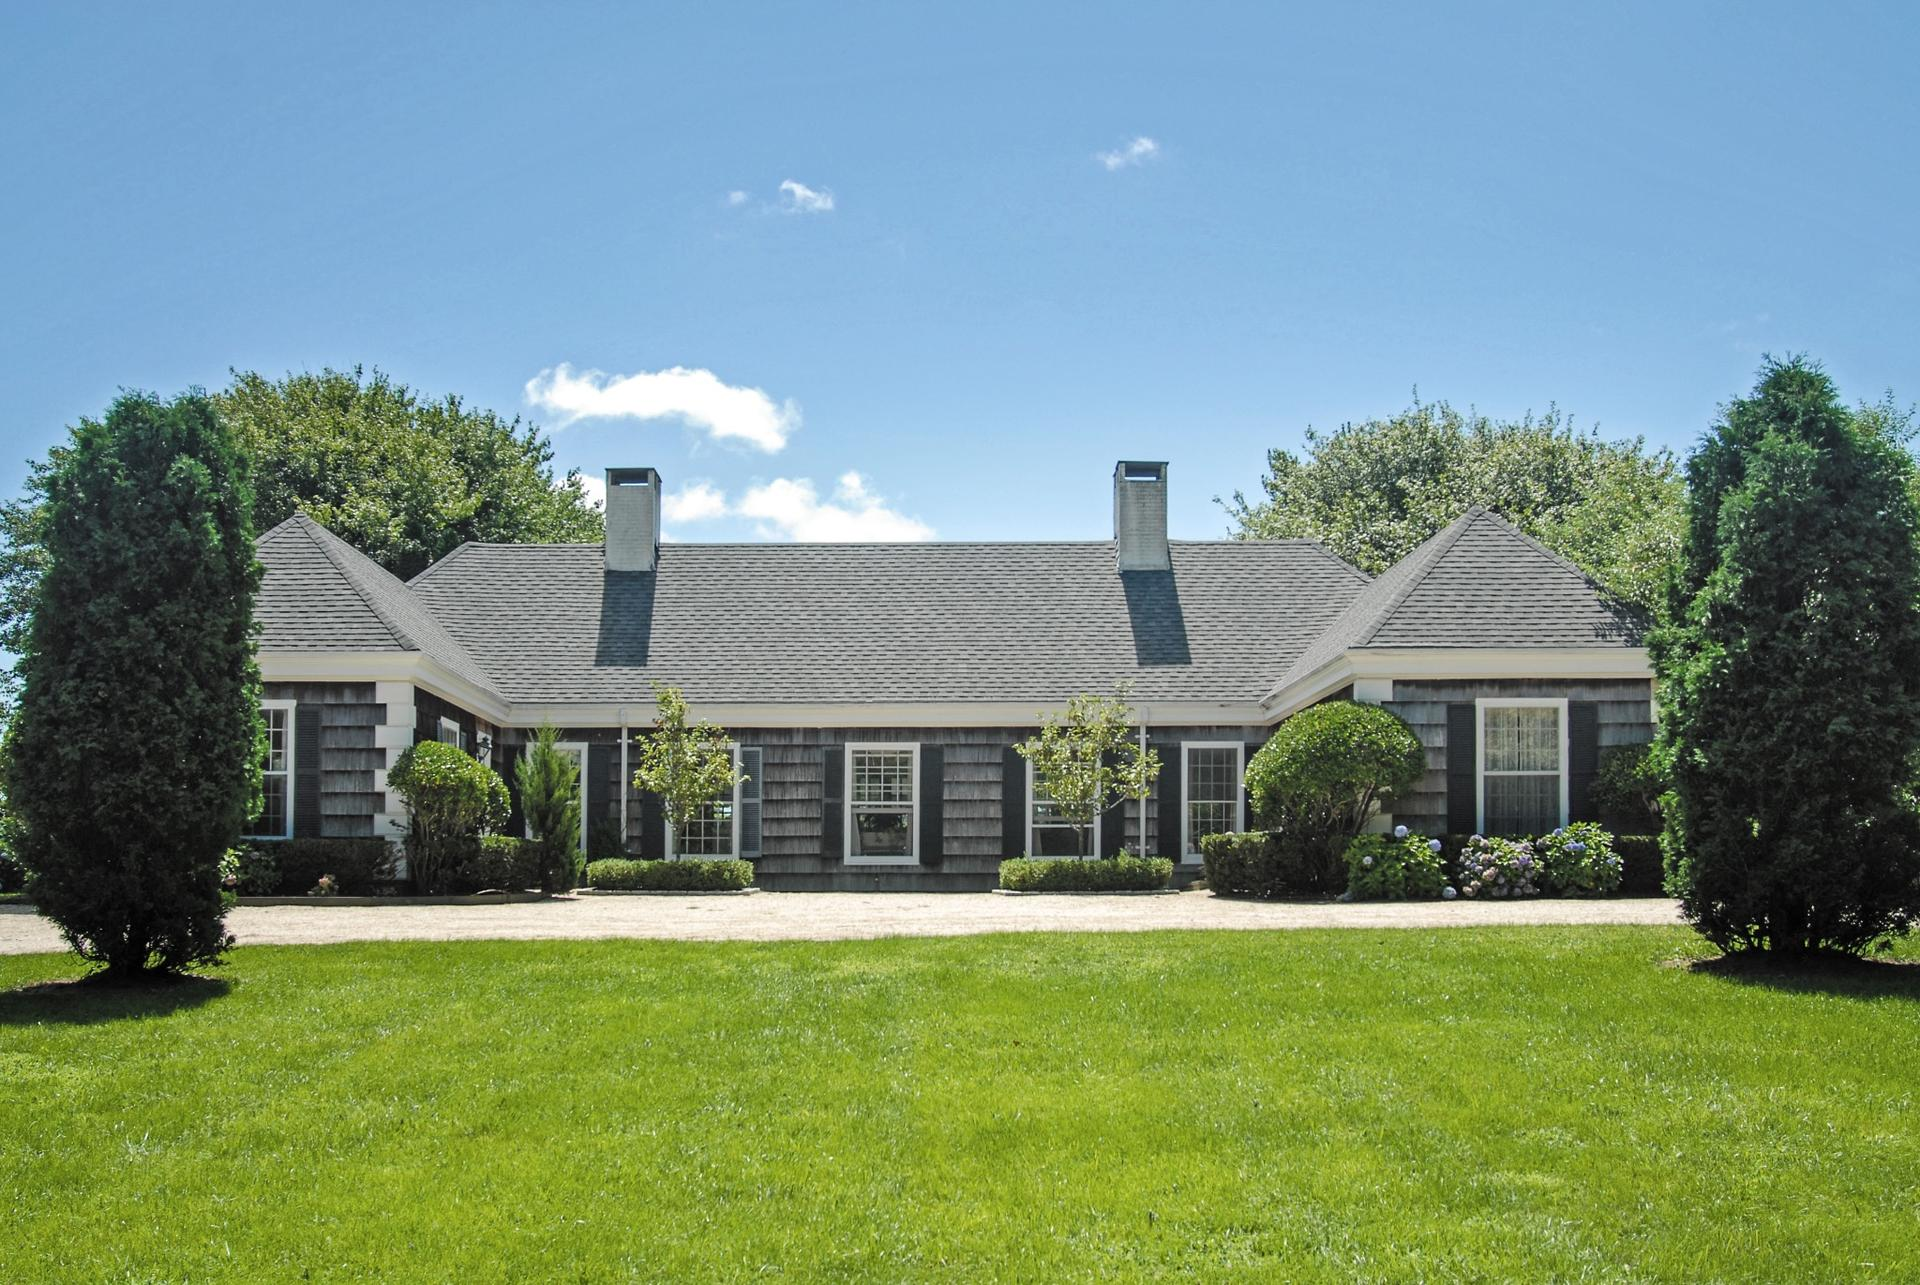 Single Family Home for Sale at Water Mill, Exclusive Cobb Isle Road Water Mill, New York